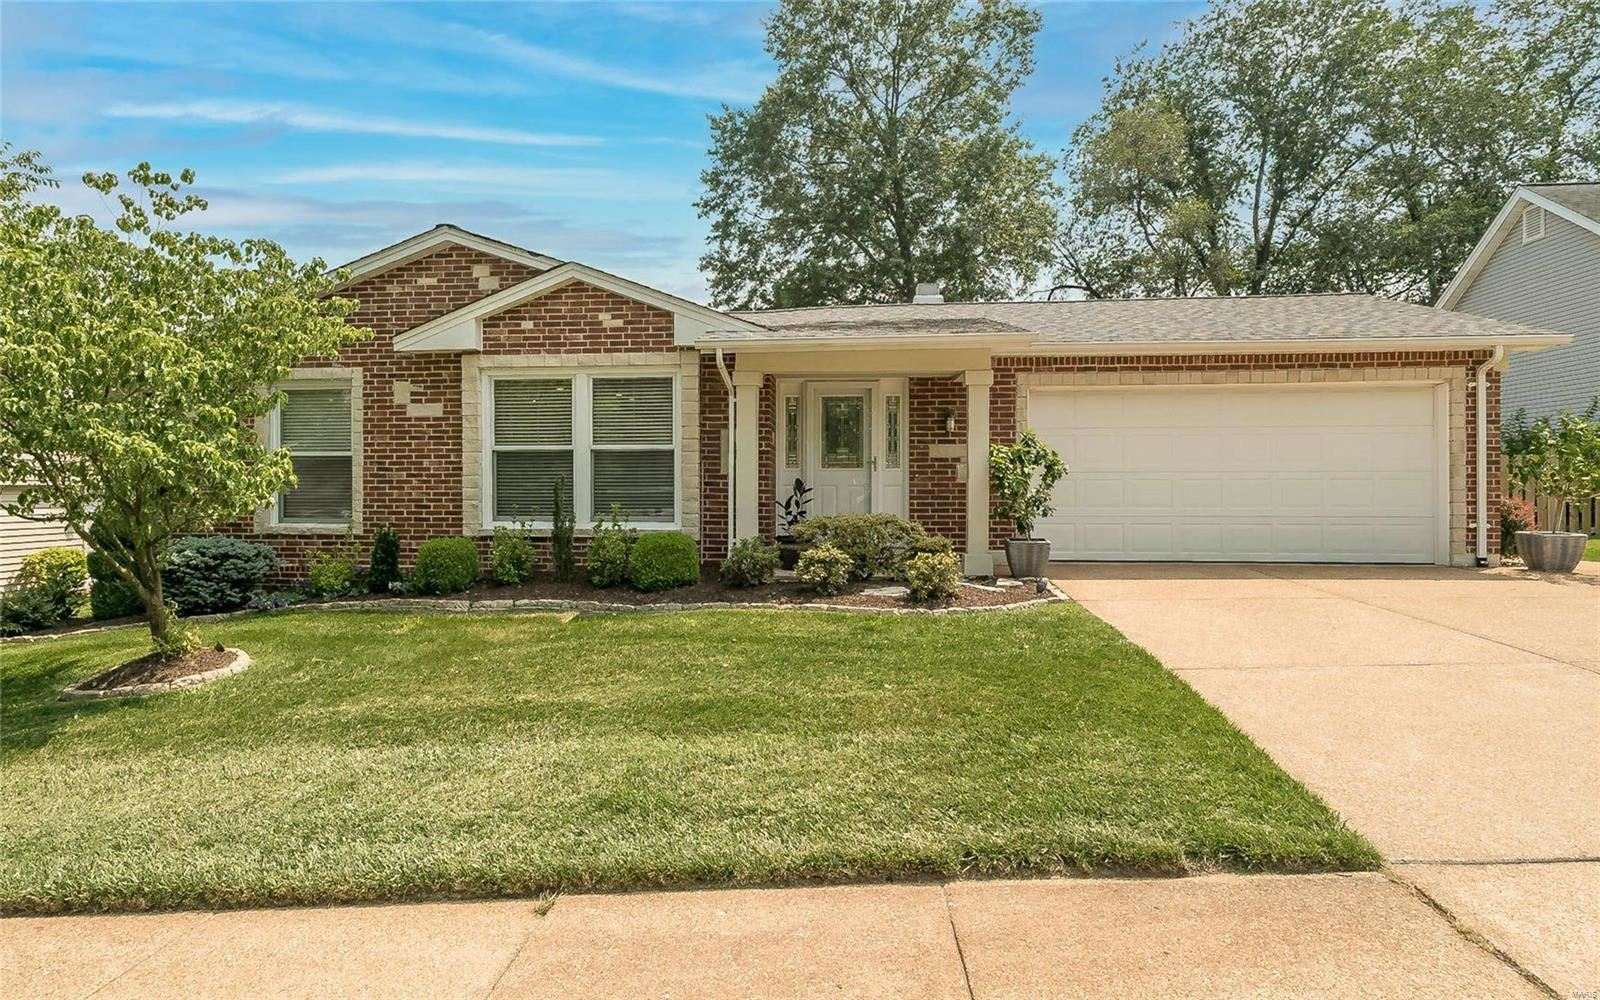 Photo for 13454 Land O Woods, Chesterfield, MO 63141 (MLS # 21052400)